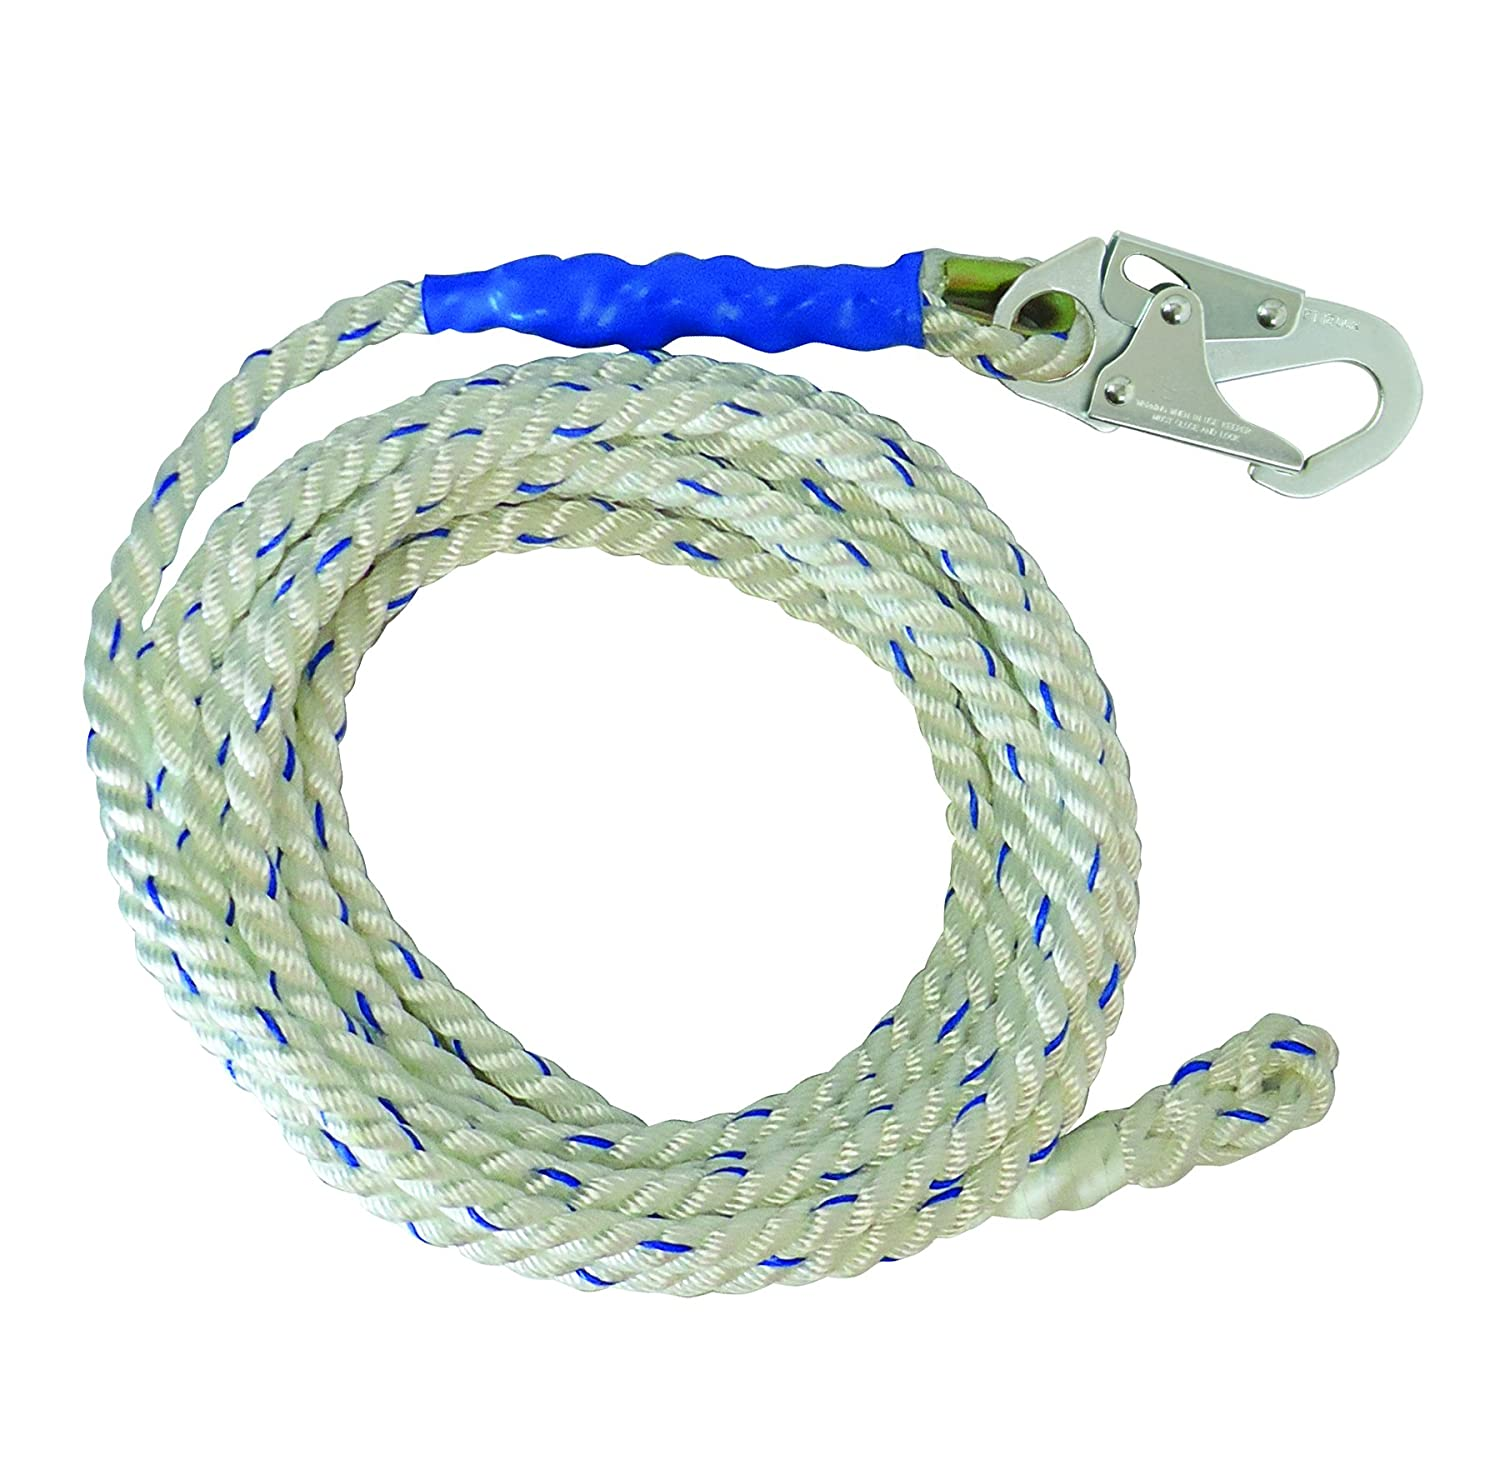 FallTech 81505 Vertical Lifeline, Rope - 5/8 Premium Polyester Rope with 1 Snap Hook and Braid-End, 150', White/Blue by FallTech B014DRJK60